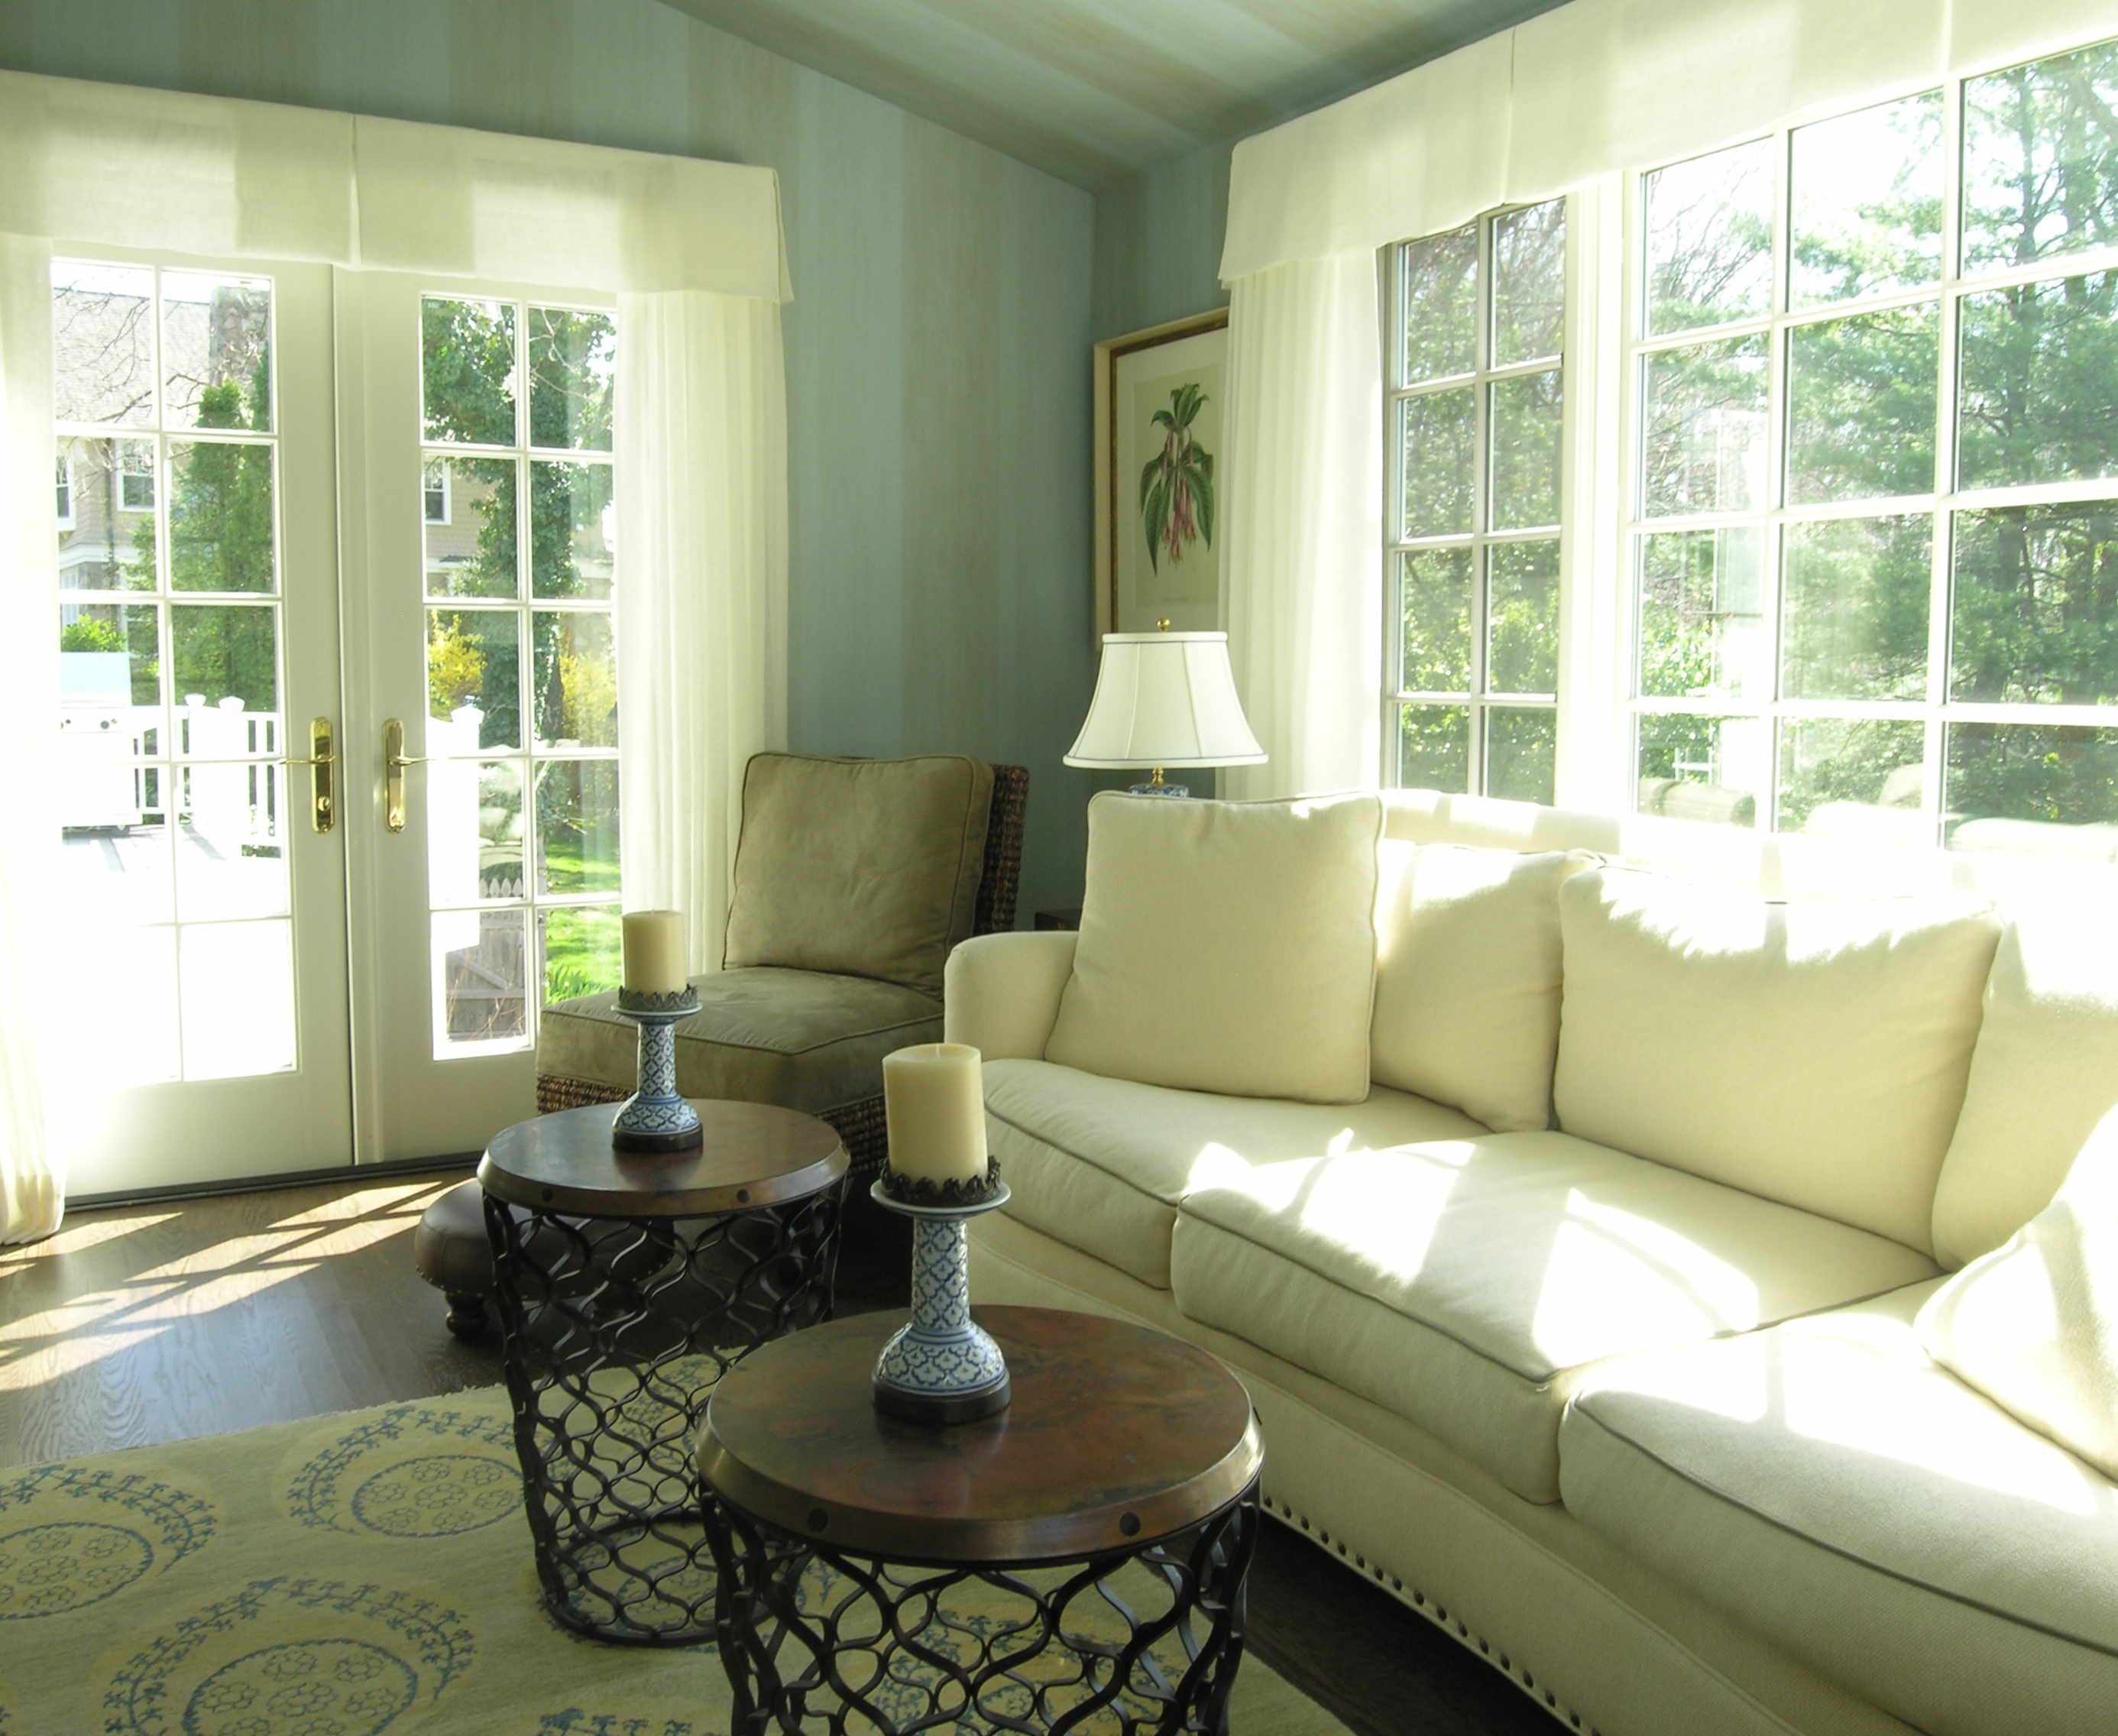 The Sunroom Window Treatments